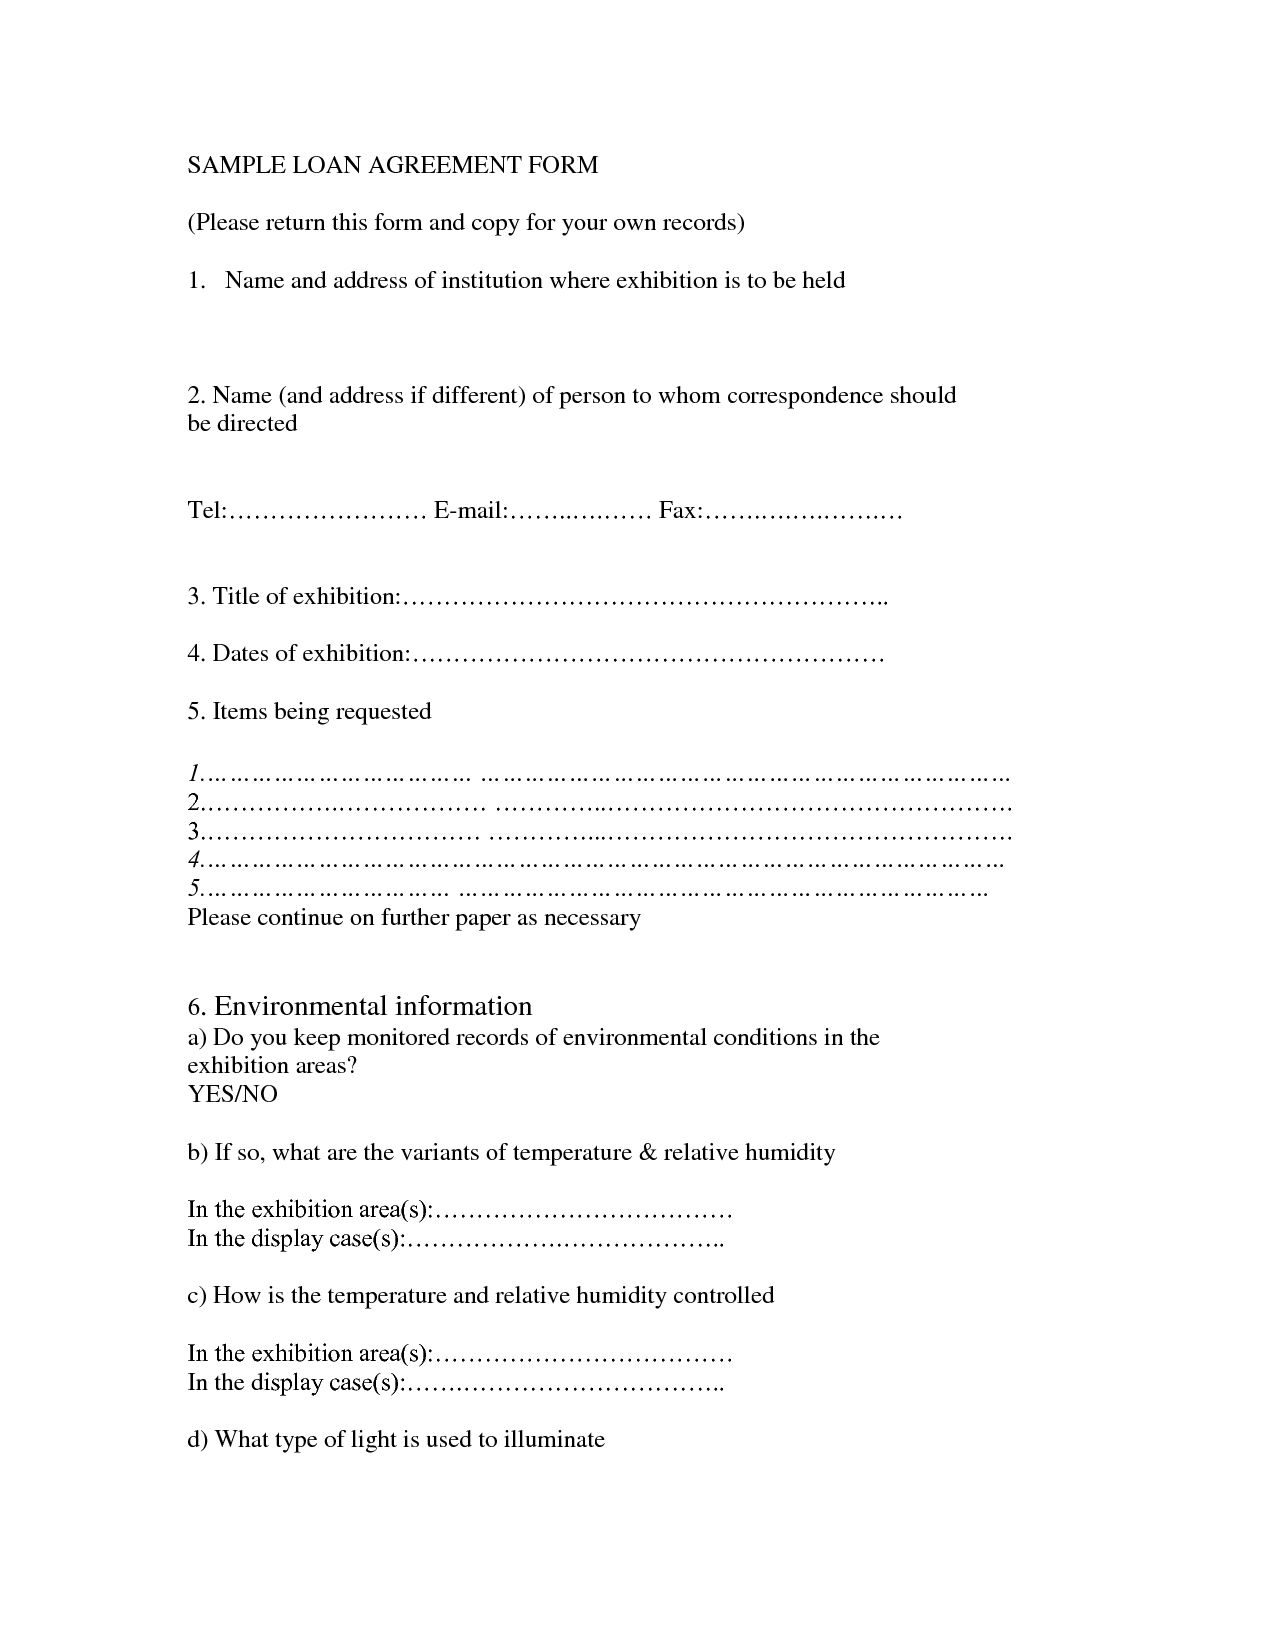 Writing A Loan Agreement Letter Between Friends With Sample Free Printable Loan Agreement Form Form Generic